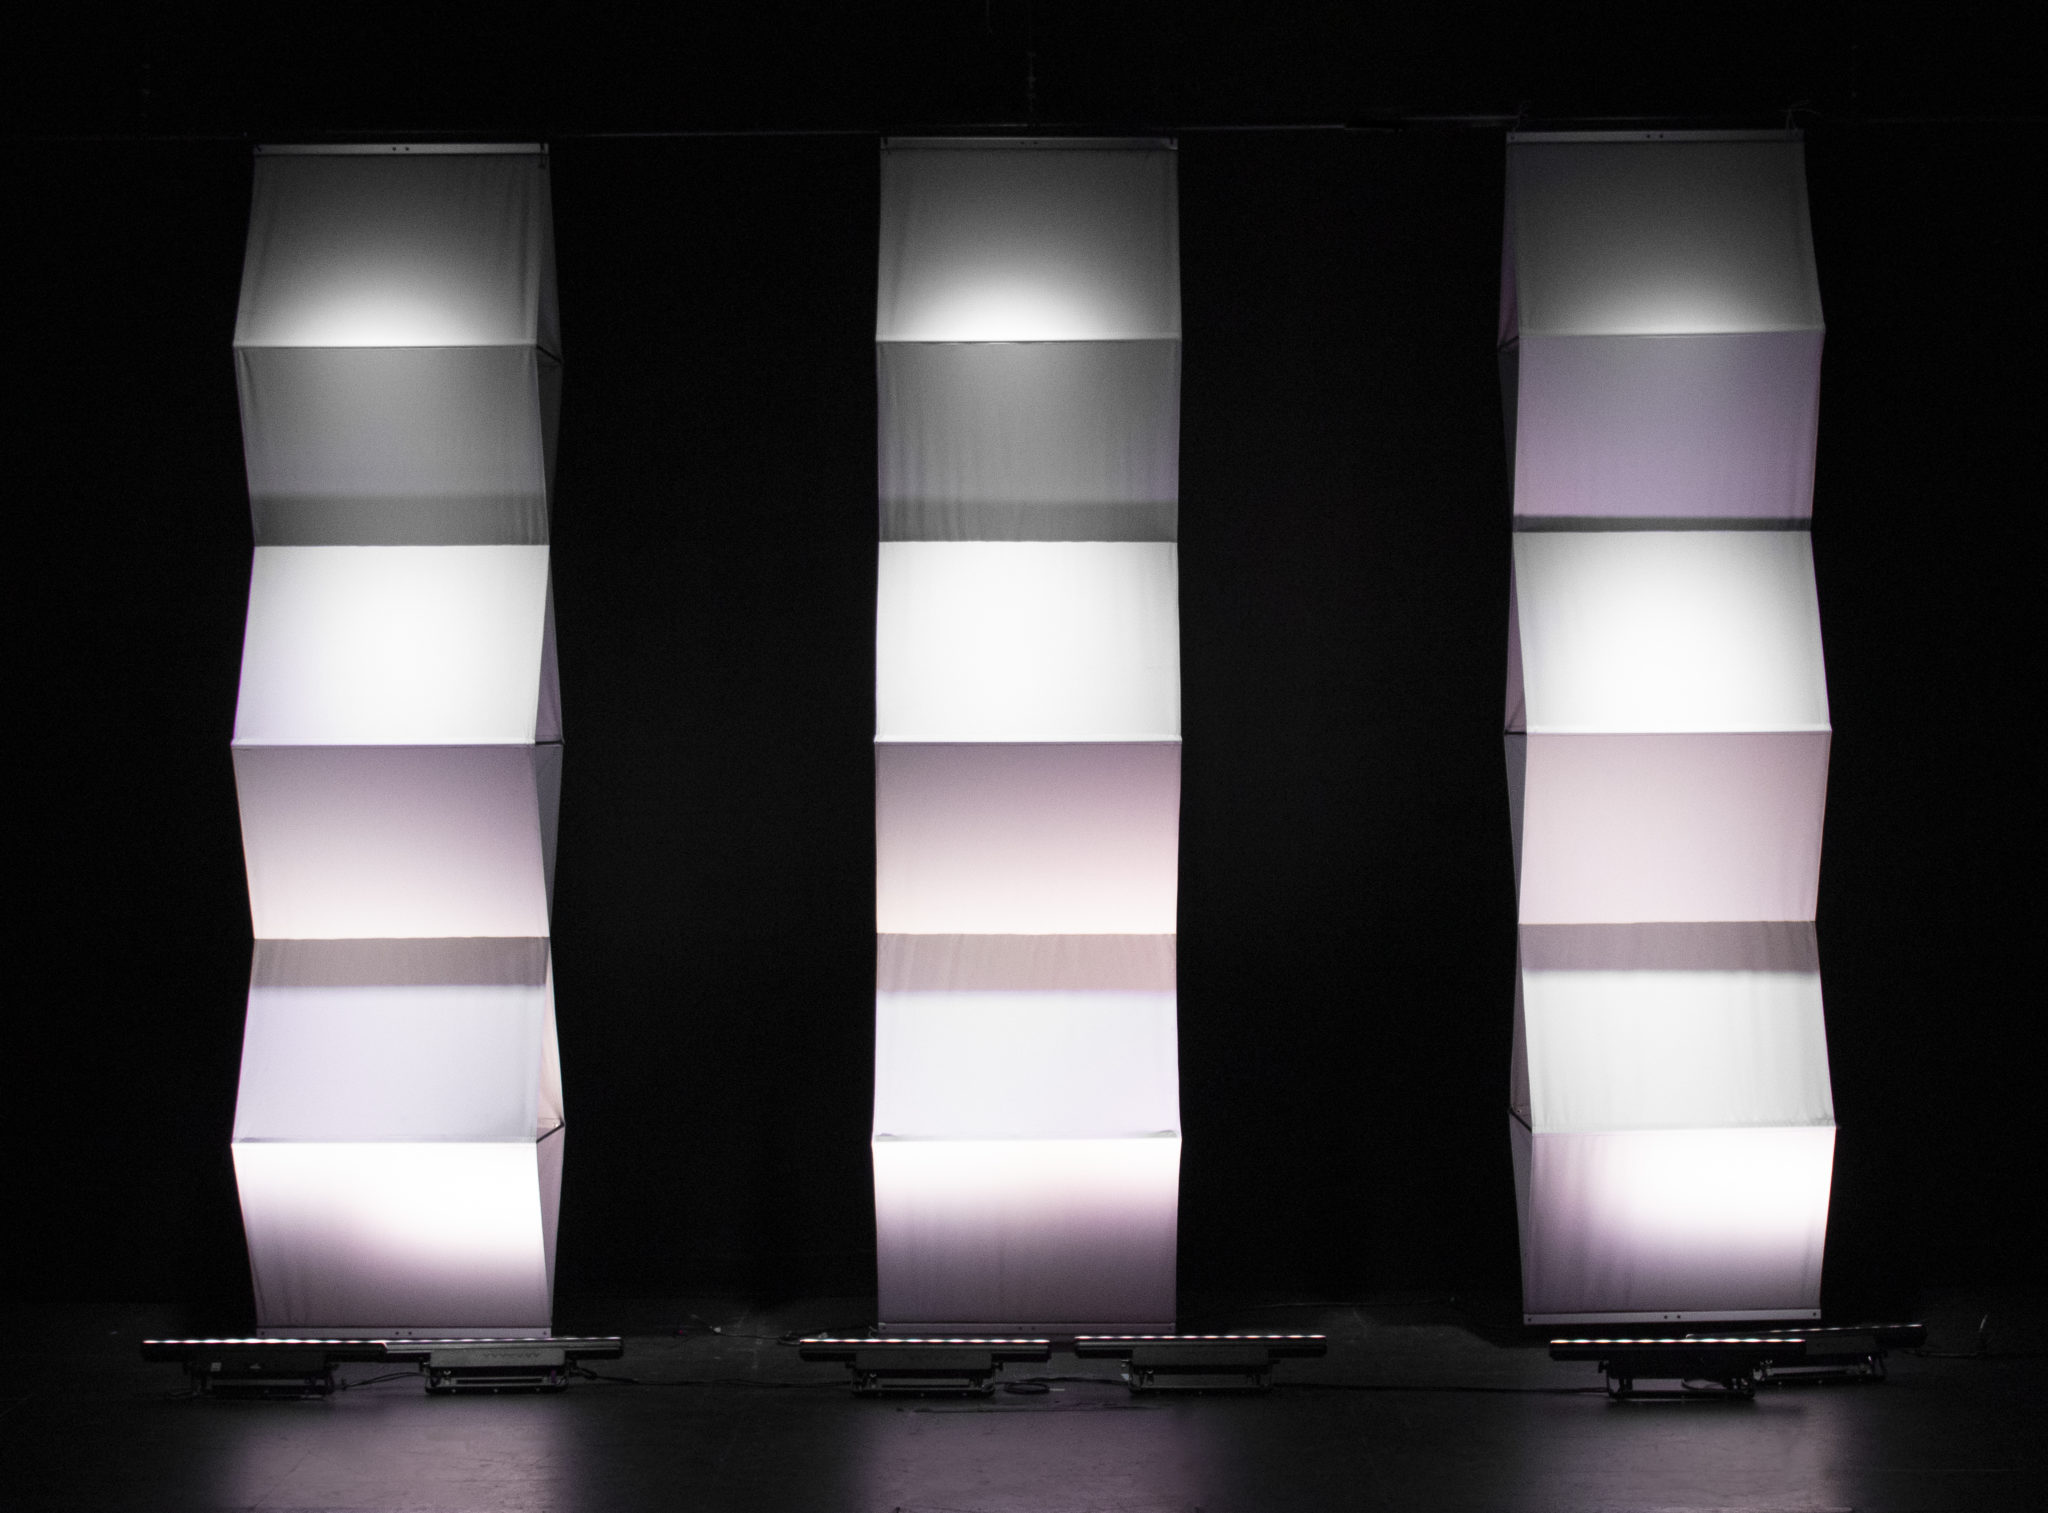 Yoga panels with white lighting